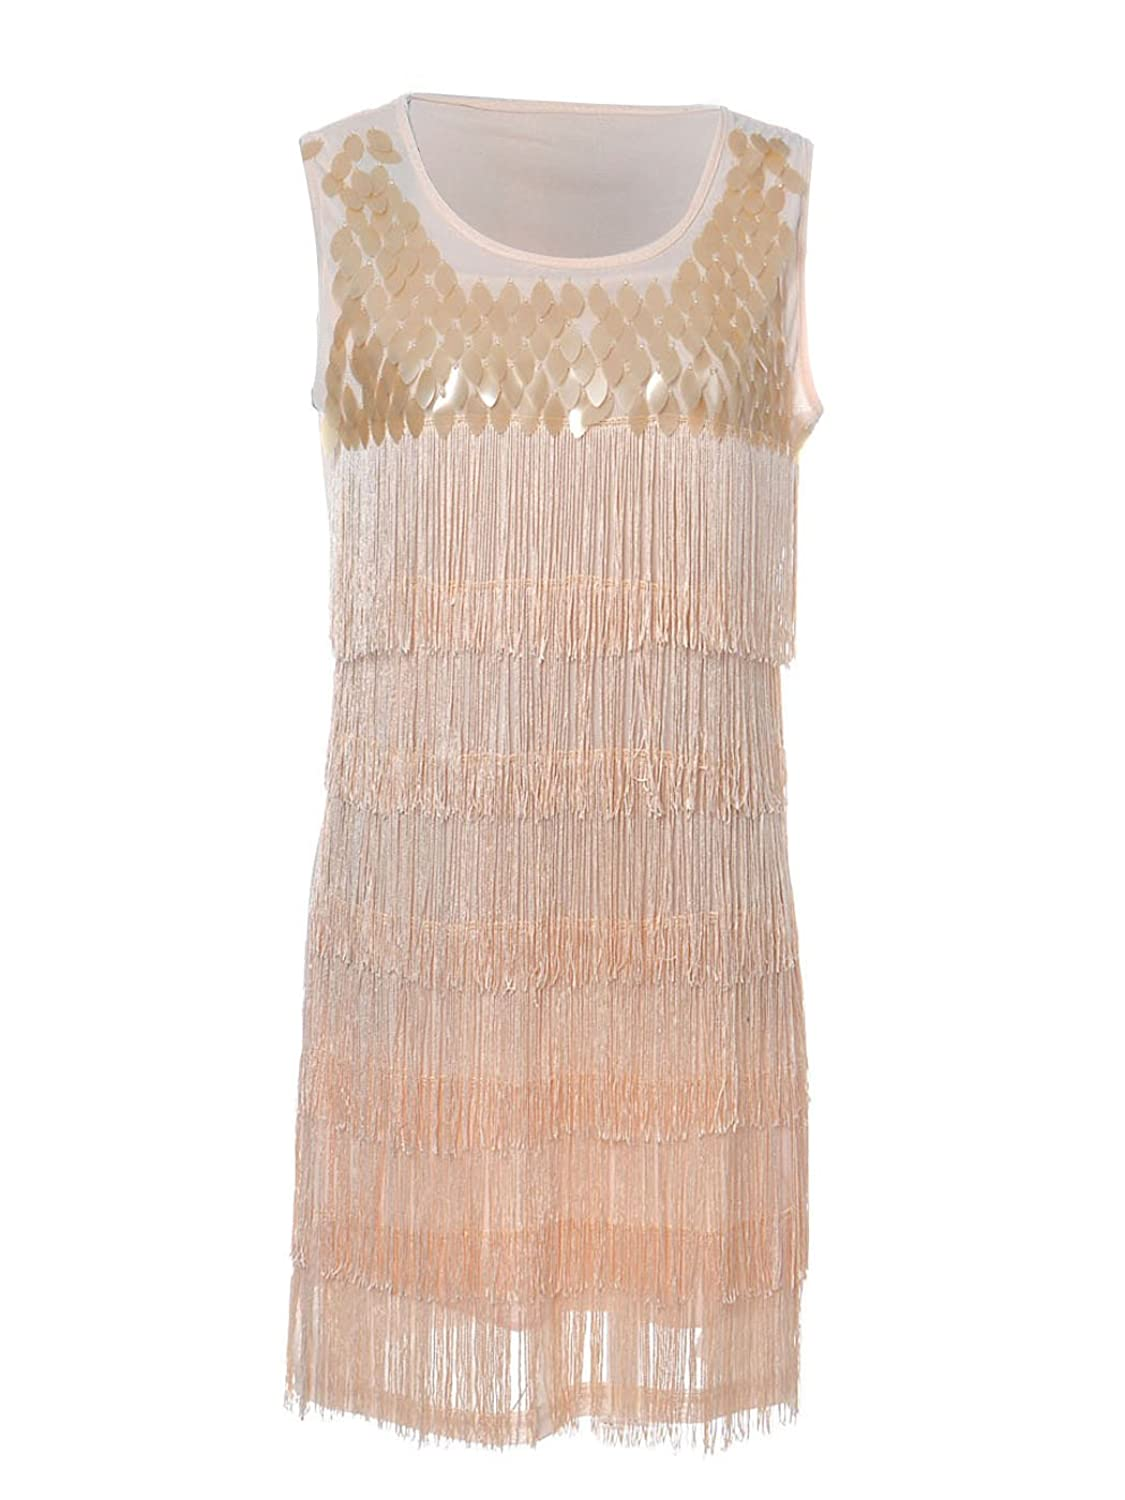 1920s Flapper Dresses For Sale Images & Pictures - Becuo